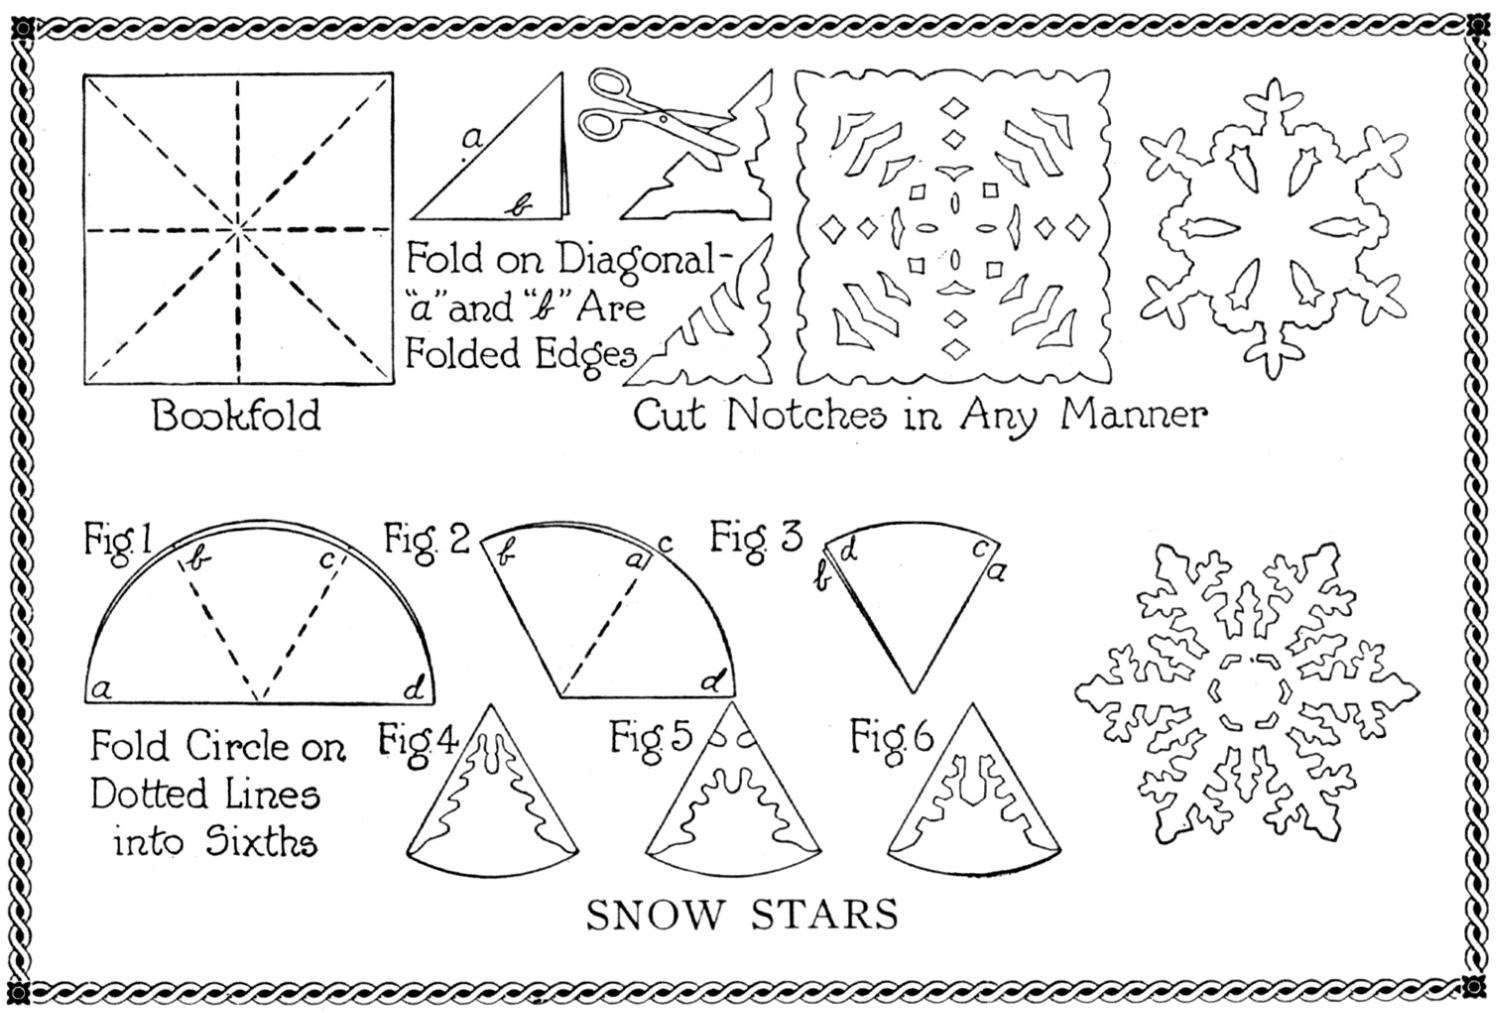 paper cutting templates for kids - snowflake paper patterns browse patterns